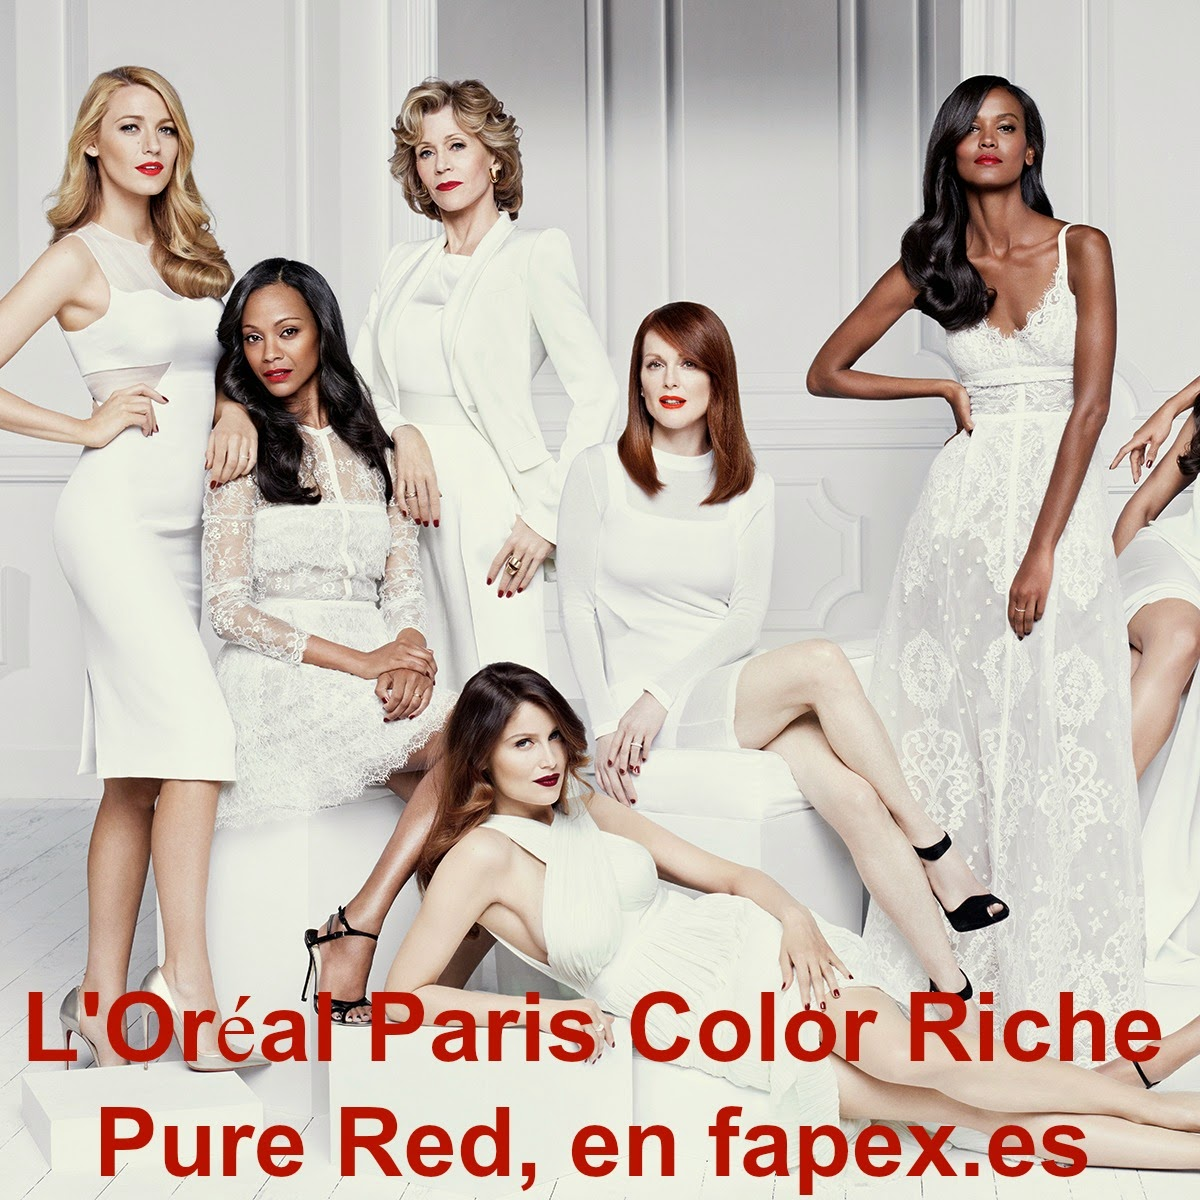 L'Oréal Paris Color Riche Pure Red,